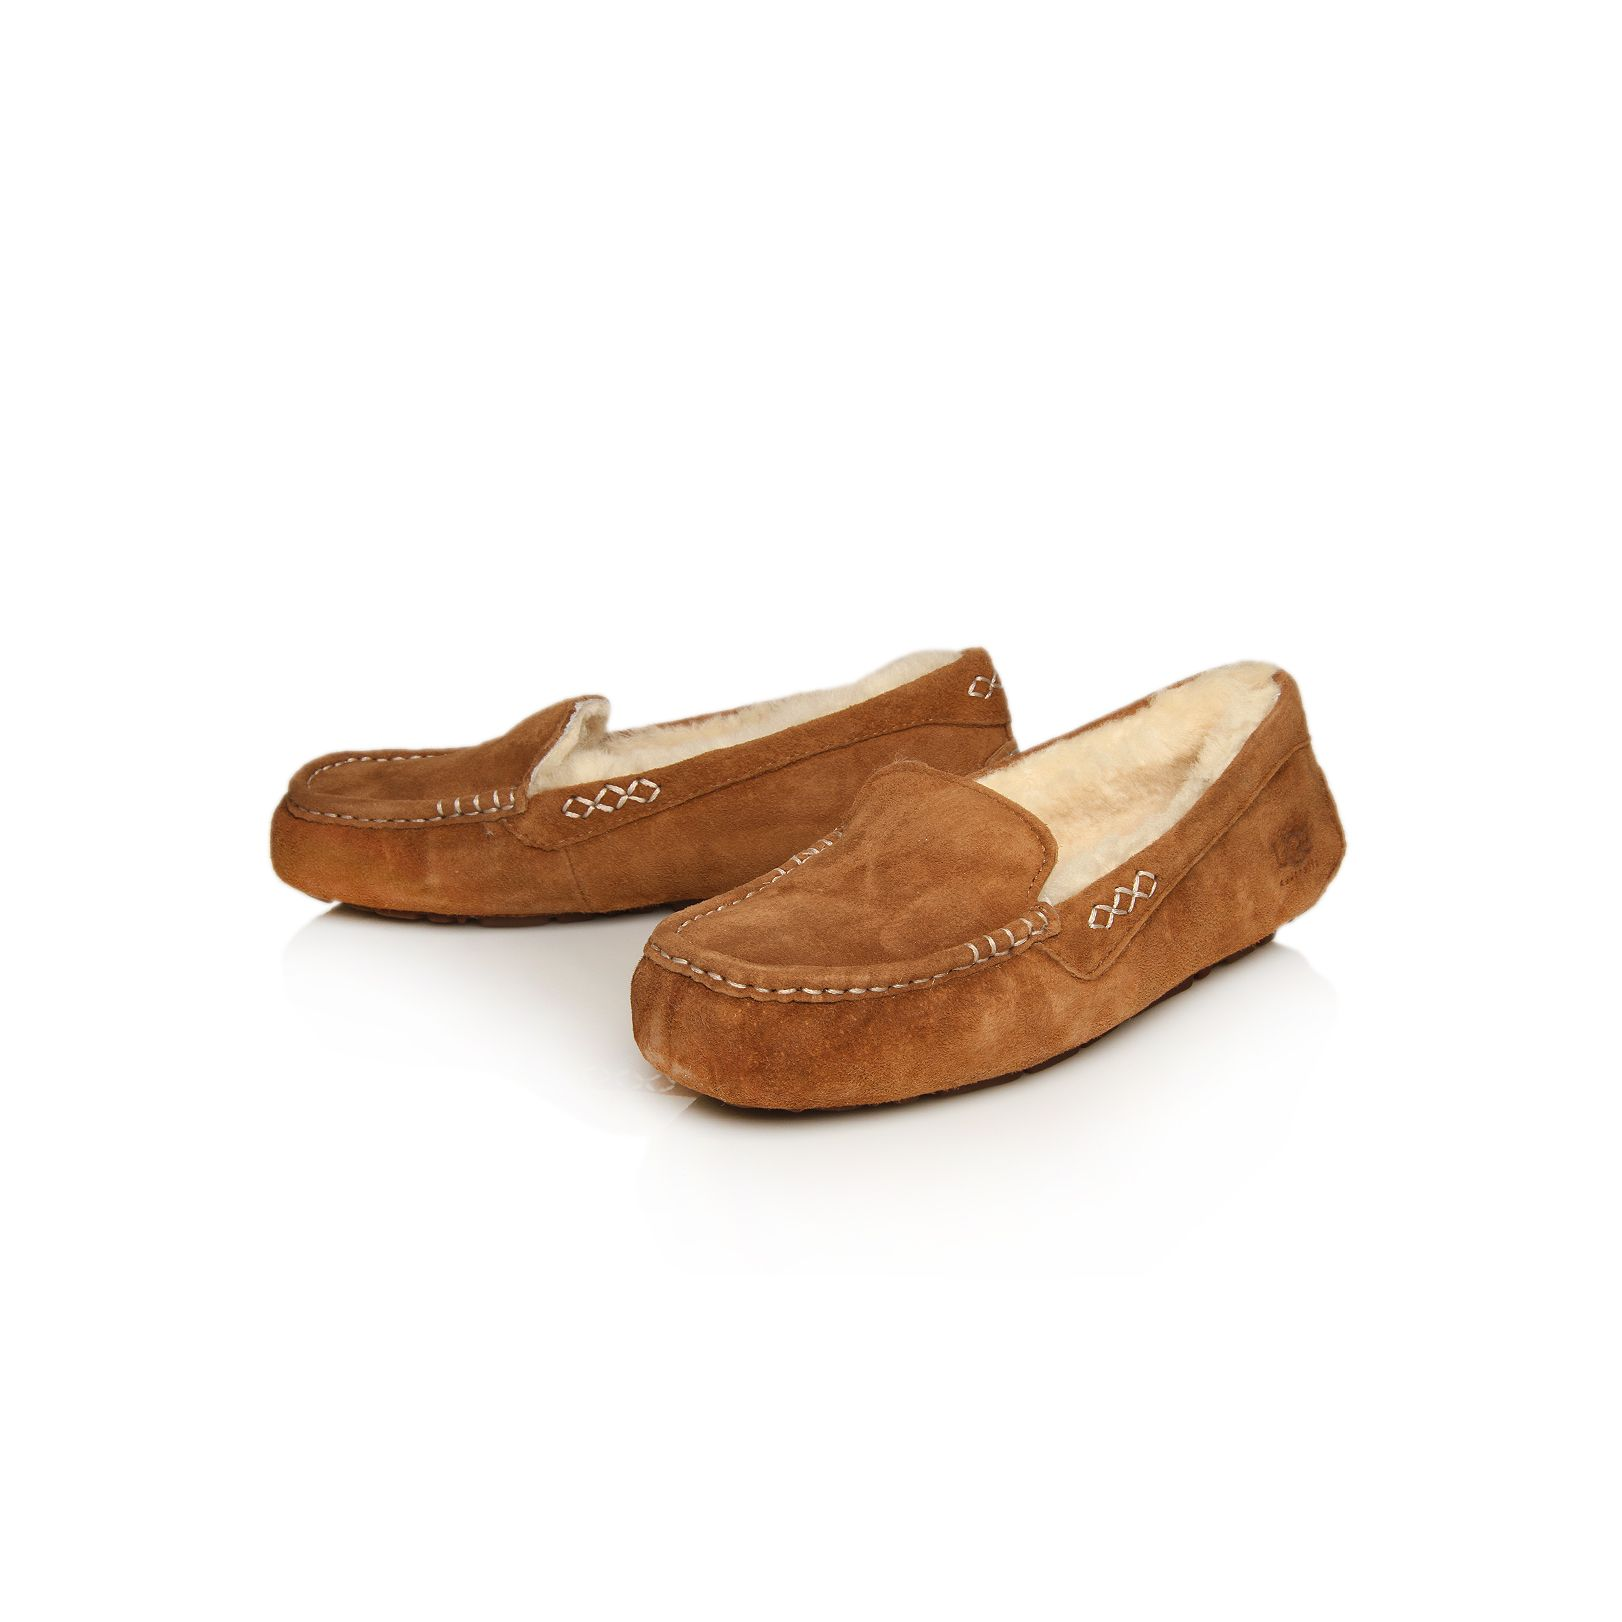 Ansley slippers